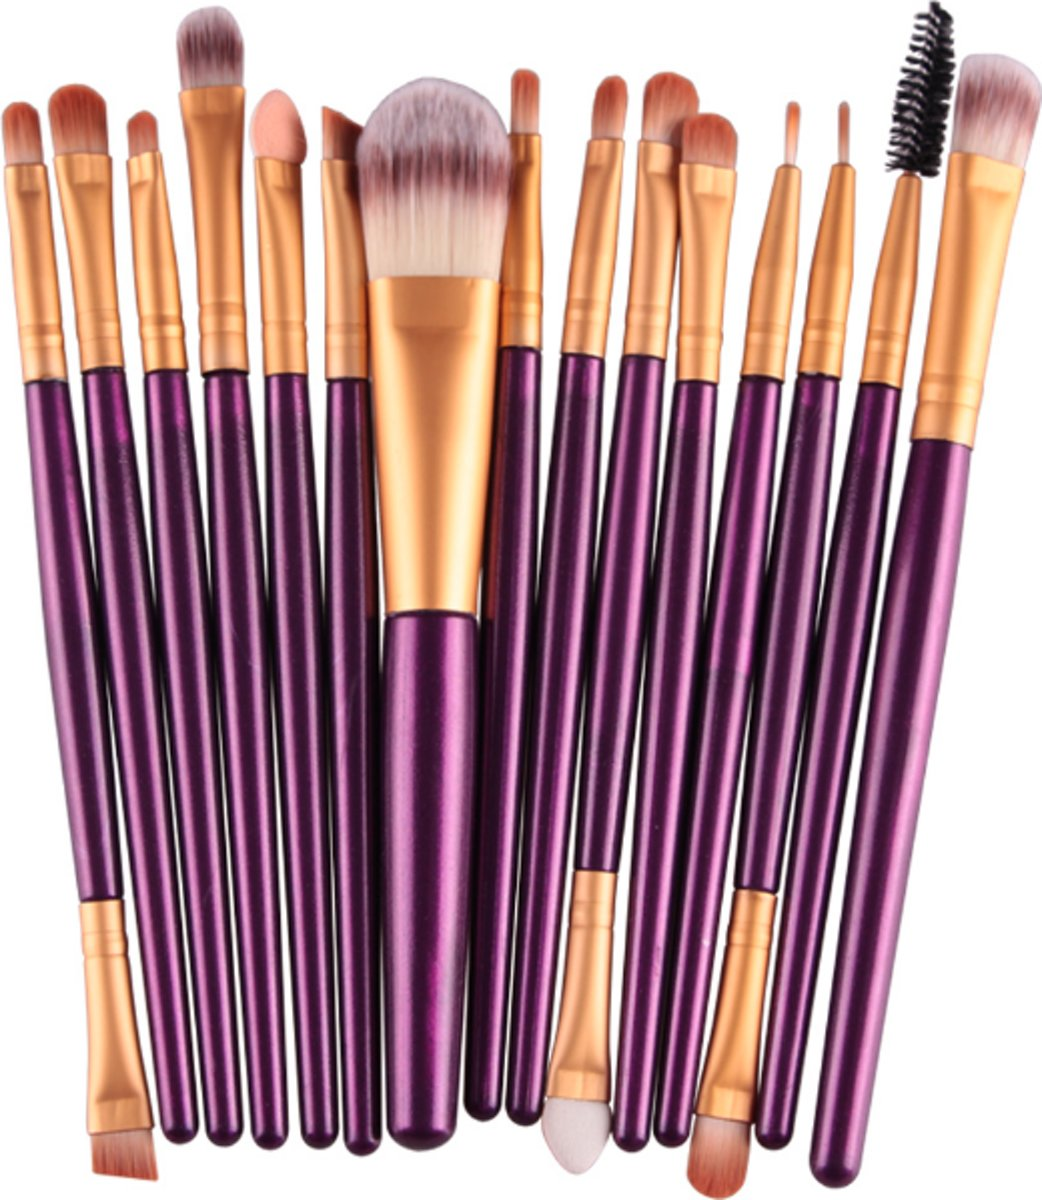 15 Delige Make-Up Kwasten Set - Oogschaduw - Foundation - Poeder - Eyeliner - Wimper - Lip - Make Up - Kwast - Beauty Tool kit